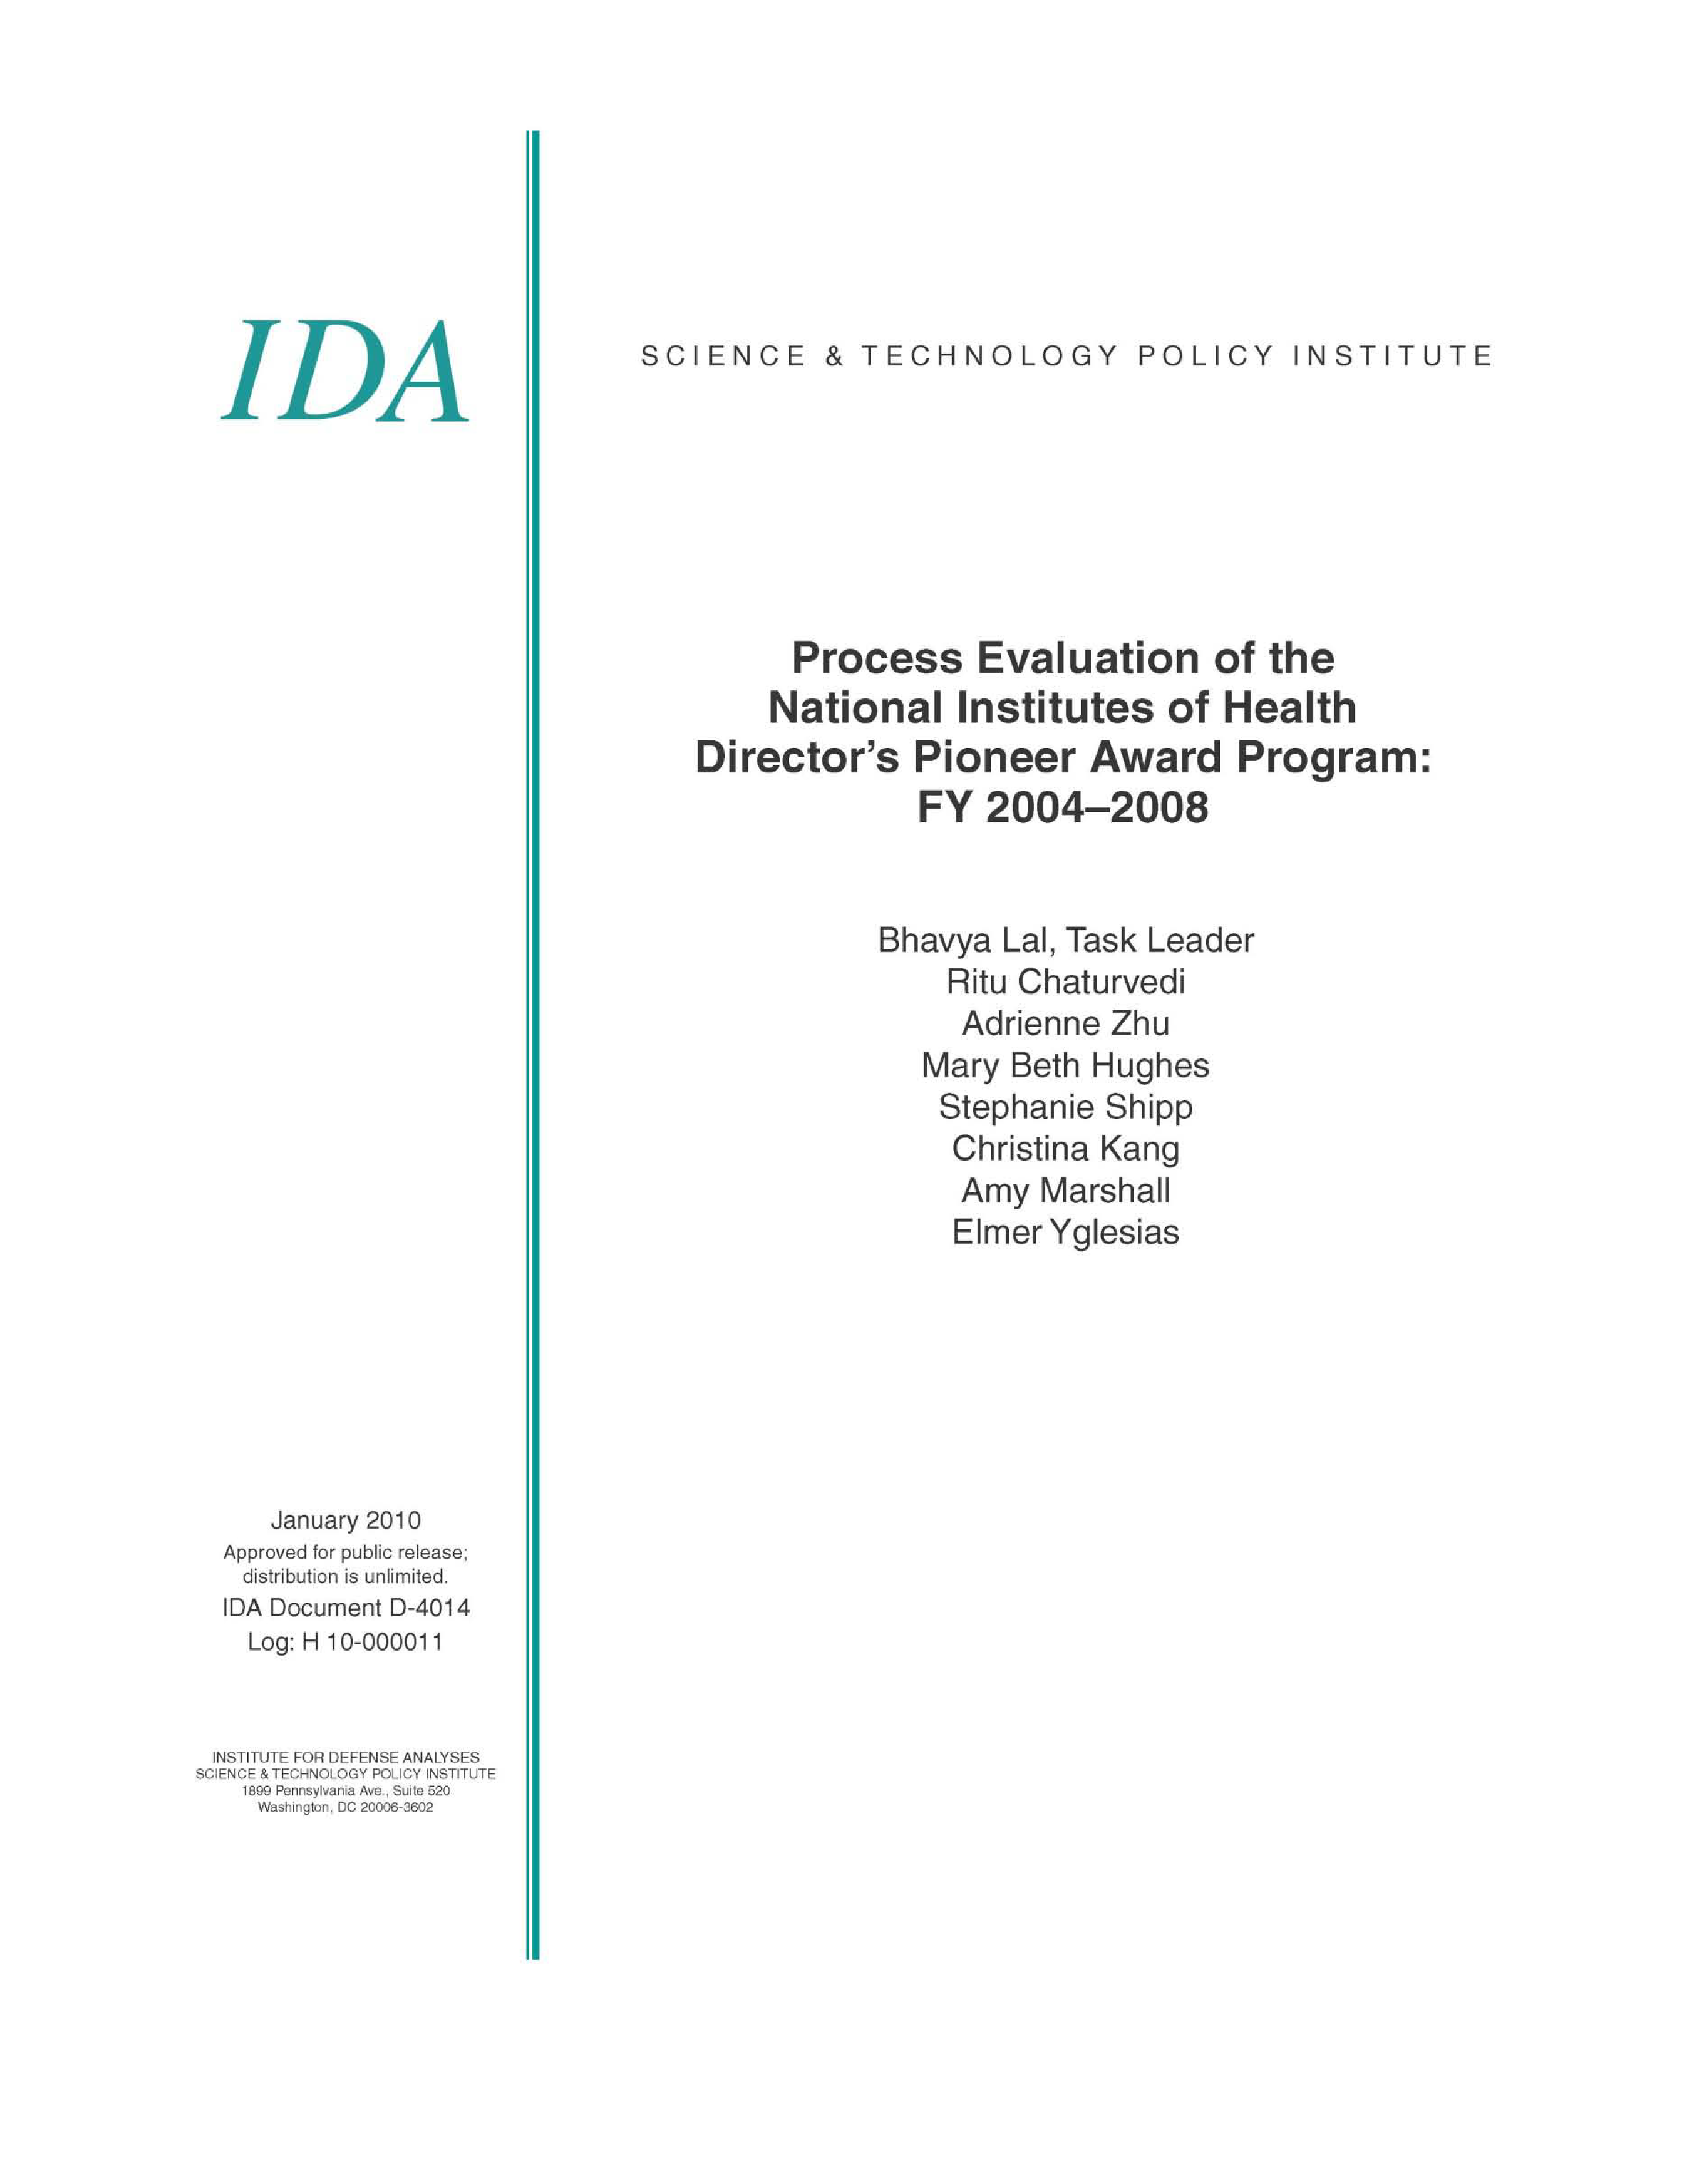 Process Evaluation of the National Institutes of Health Director